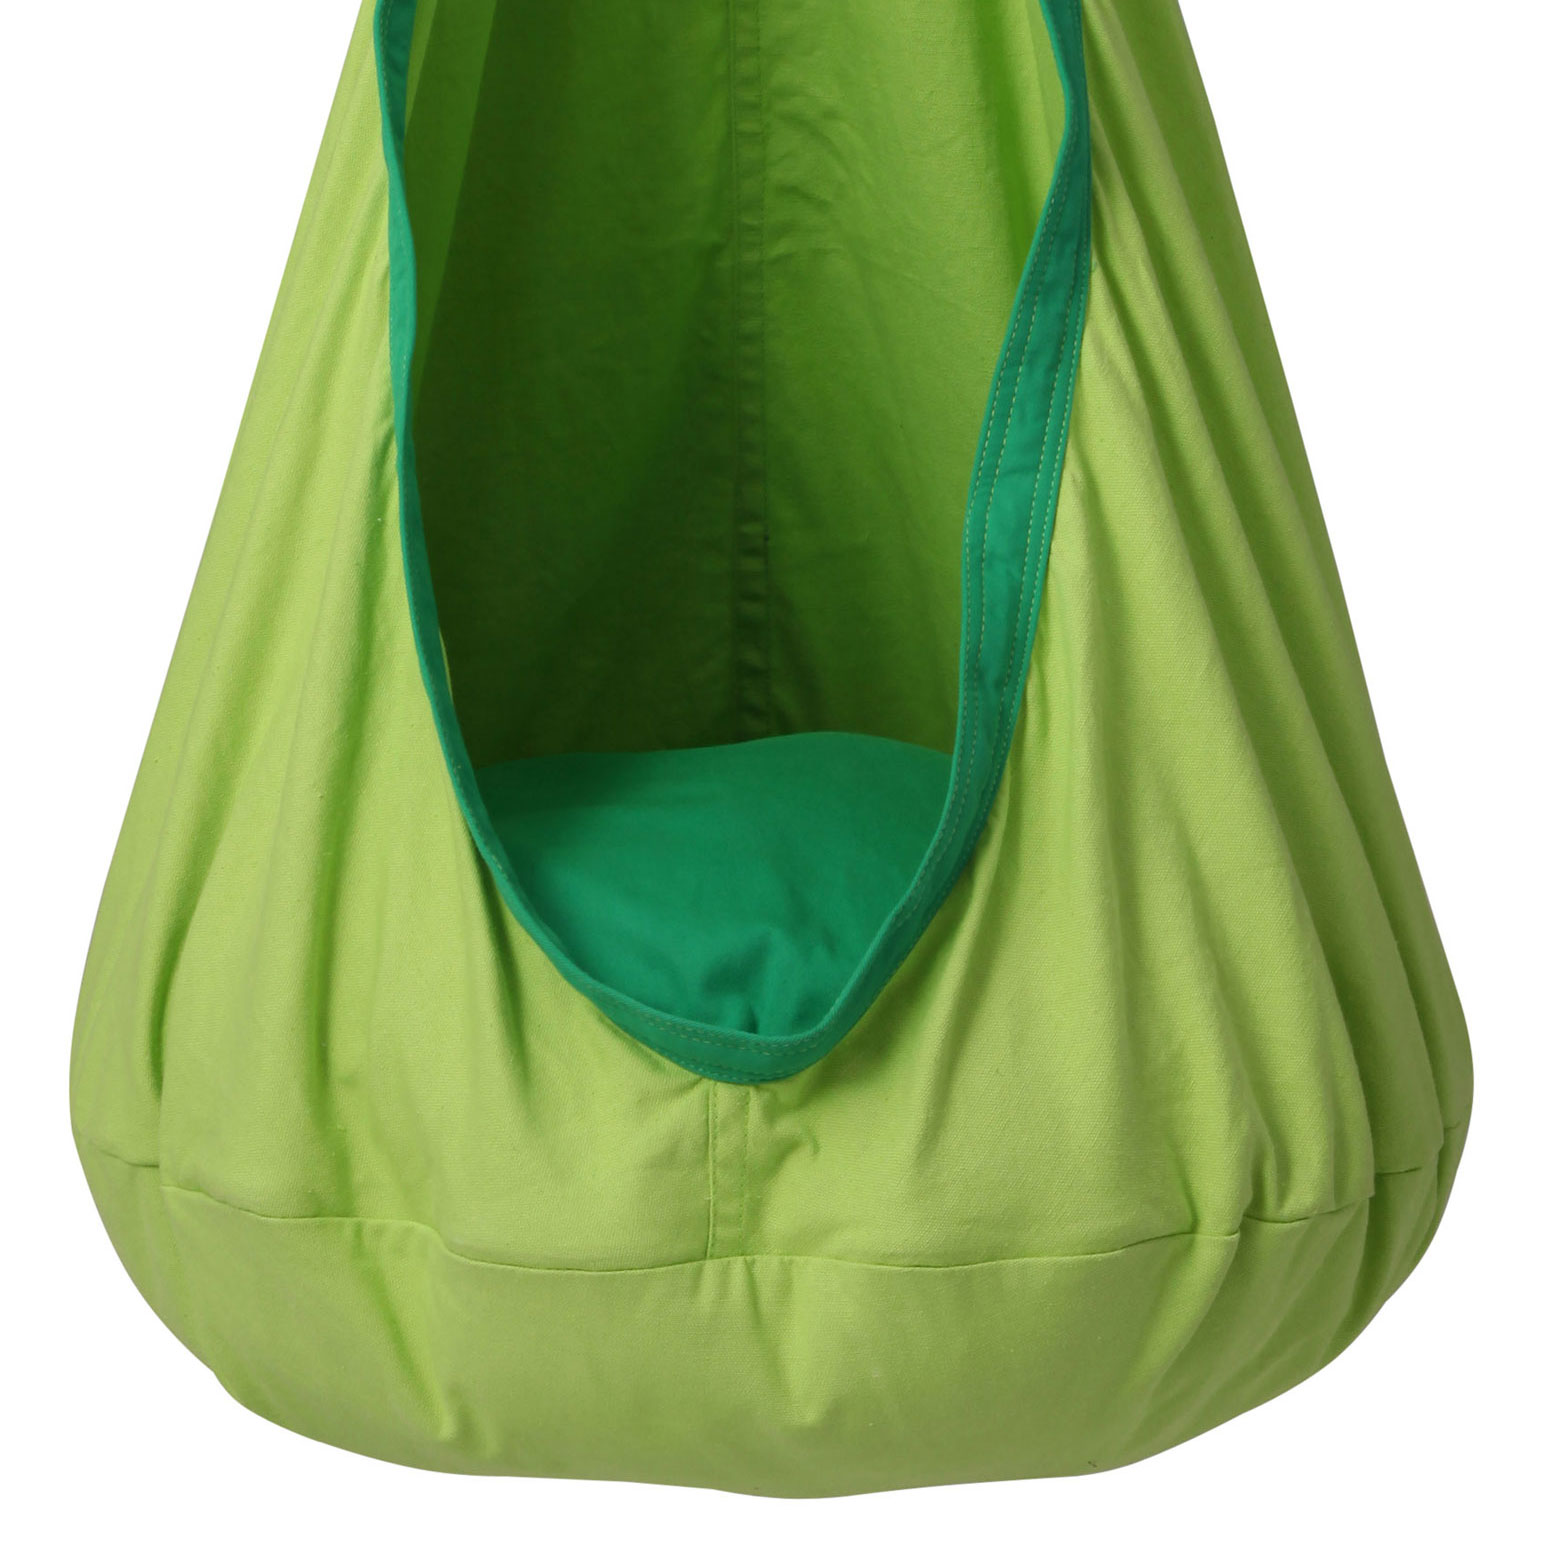 Green Kids Sensory Swing Pod Chair  Heavenly Hammocks